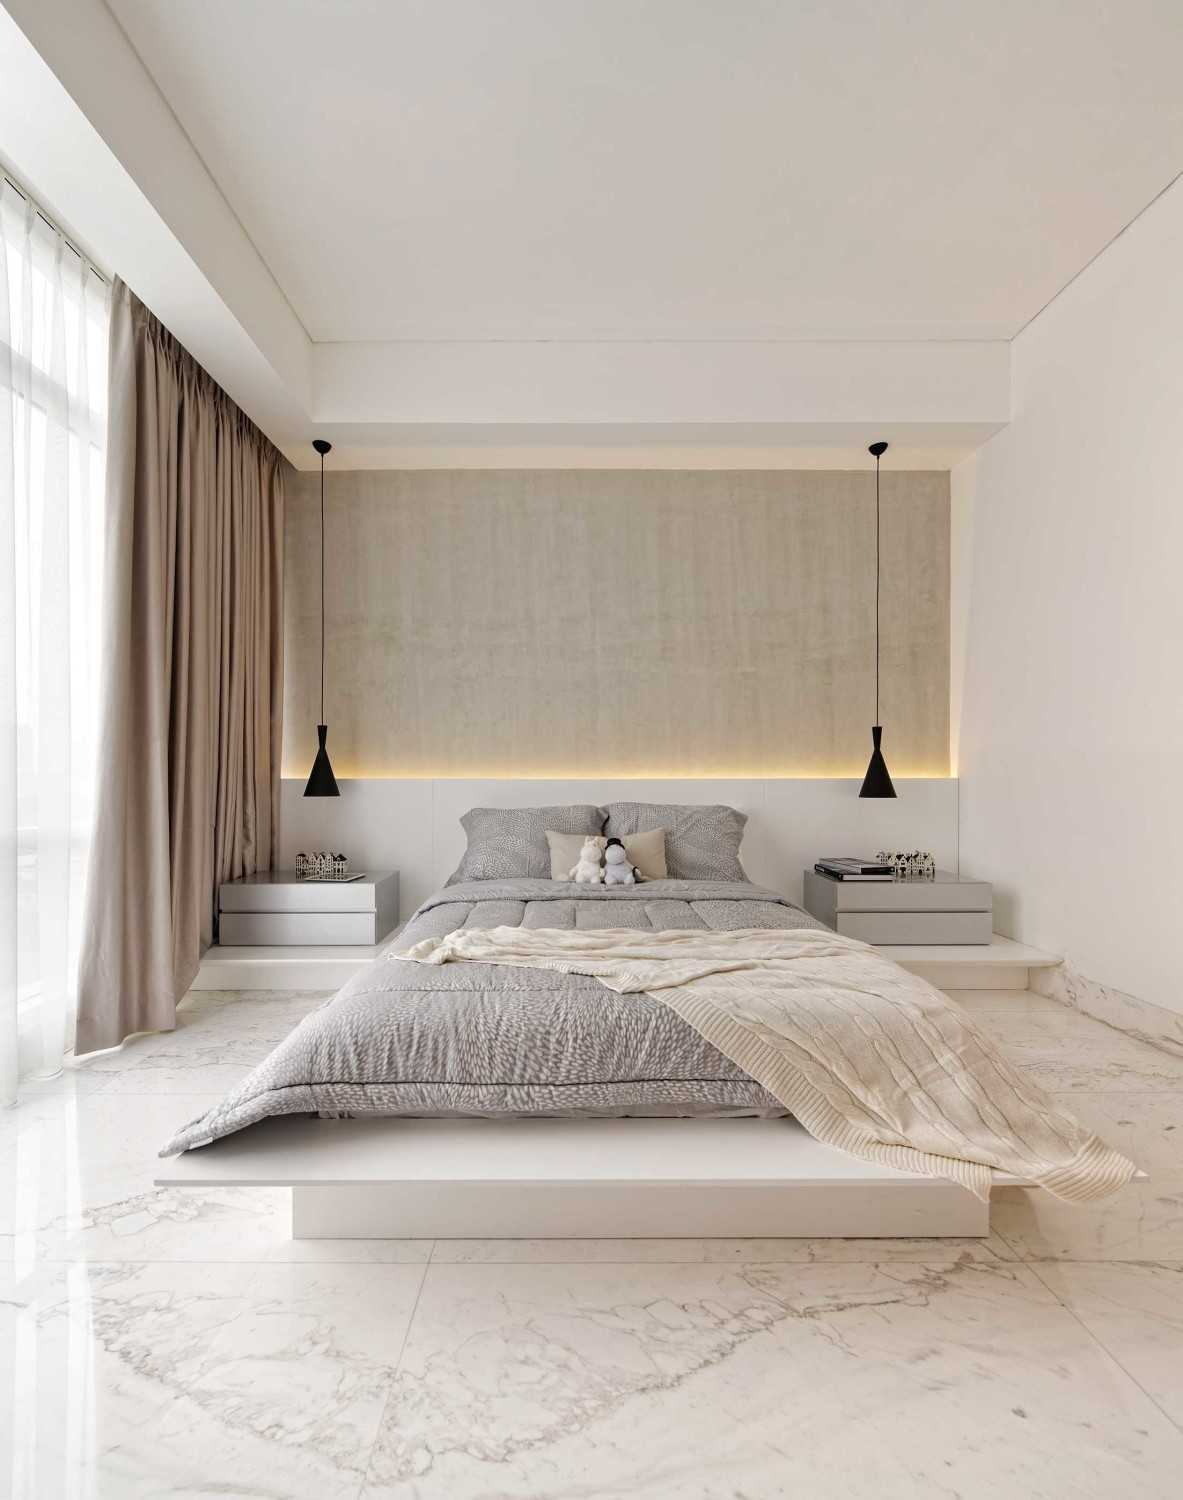 Sontani Partners 11A Residence South Jakarta, Indonesia South Jakarta, Indonesia Bedroom Kontemporer,industrial,wood,modern 21400